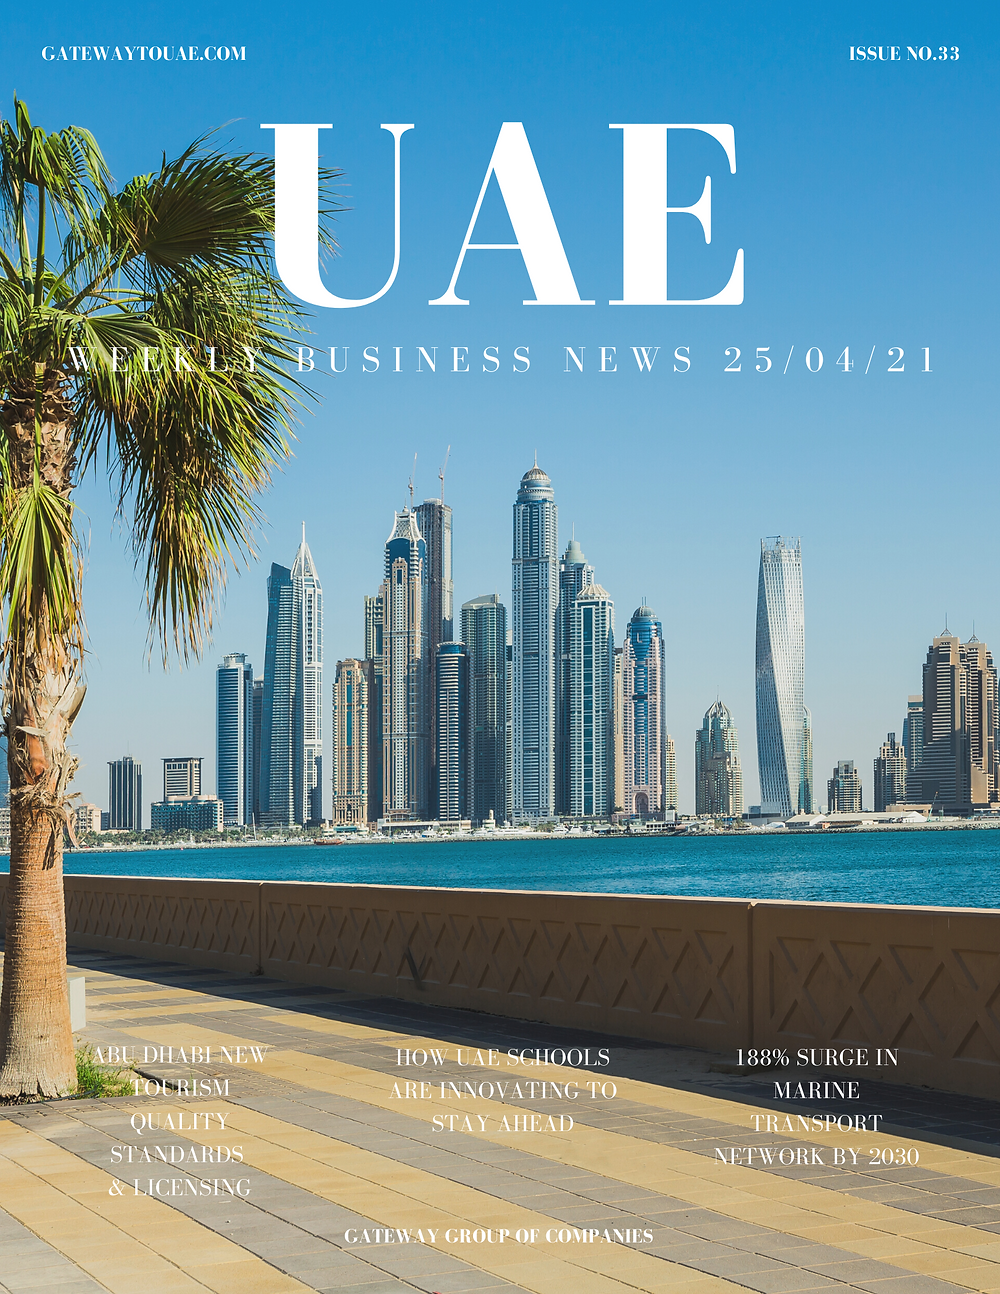 UAE weekly business news headlines 25th April 2021 Issue 33 Gateway Group Of Companies Abu Dhabi Dubai weekly magazine company formation business setup local sponsor service agent visas company formation authority trade licence license